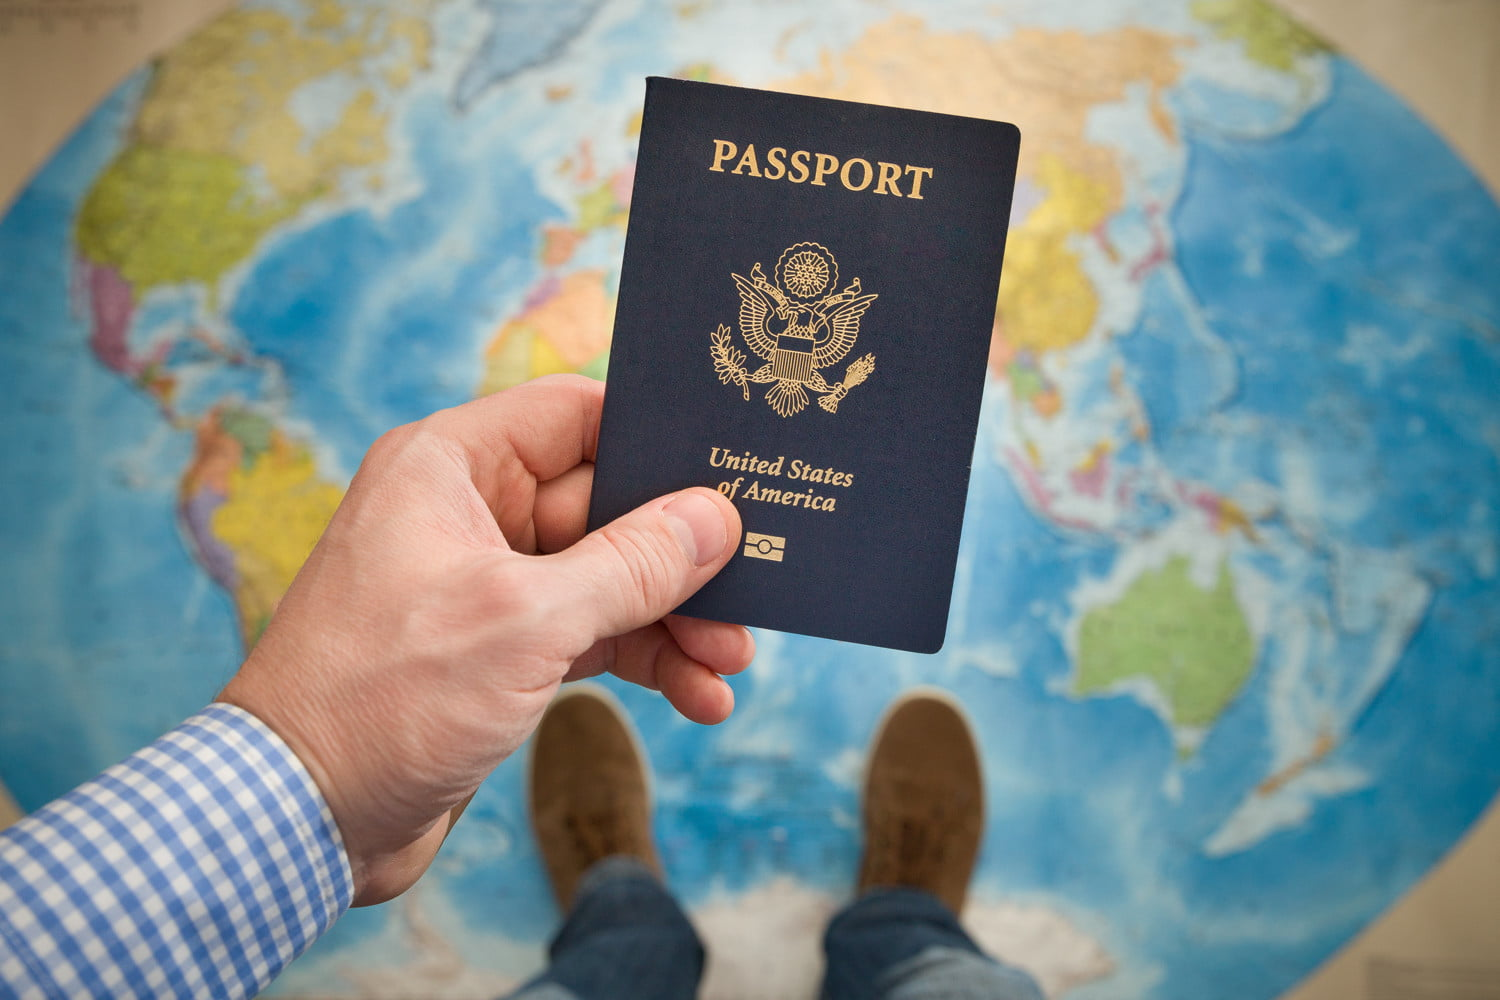 Collect documents for obtaining or replacing a passport - easier